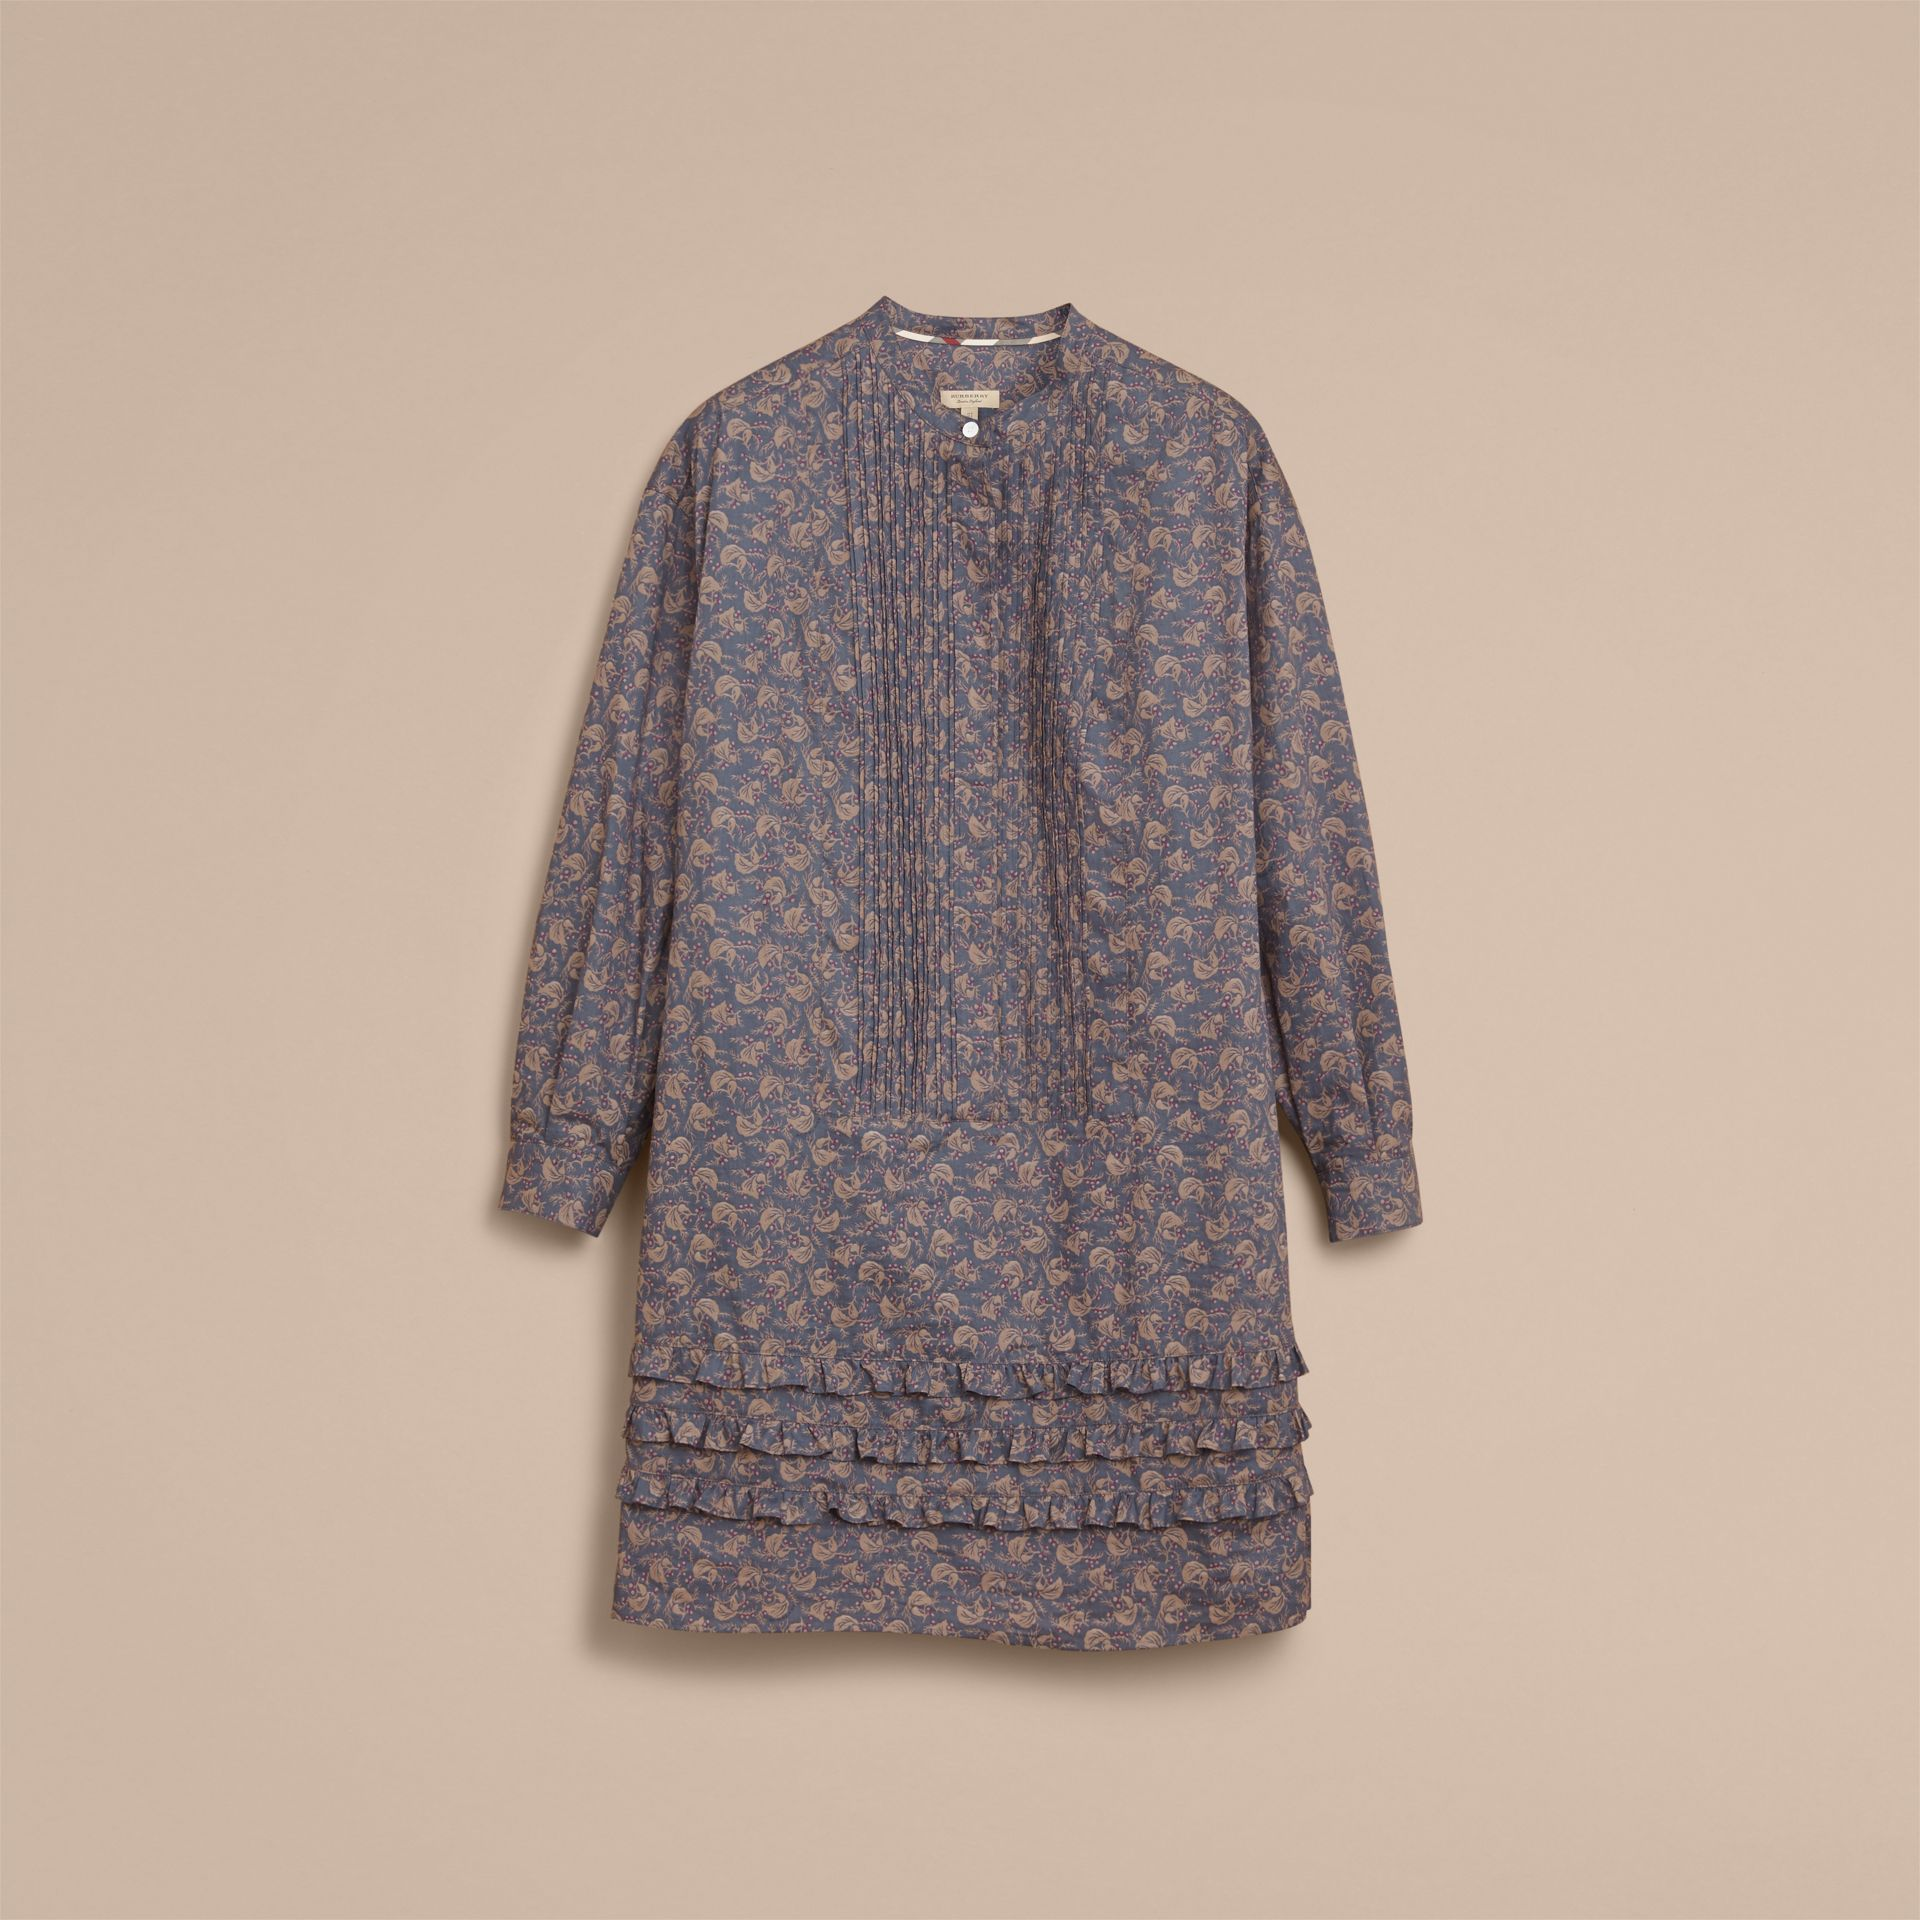 Pintuck Bib Leaf Print Cotton Shirt Dress in Steel Blue - Women | Burberry - gallery image 3